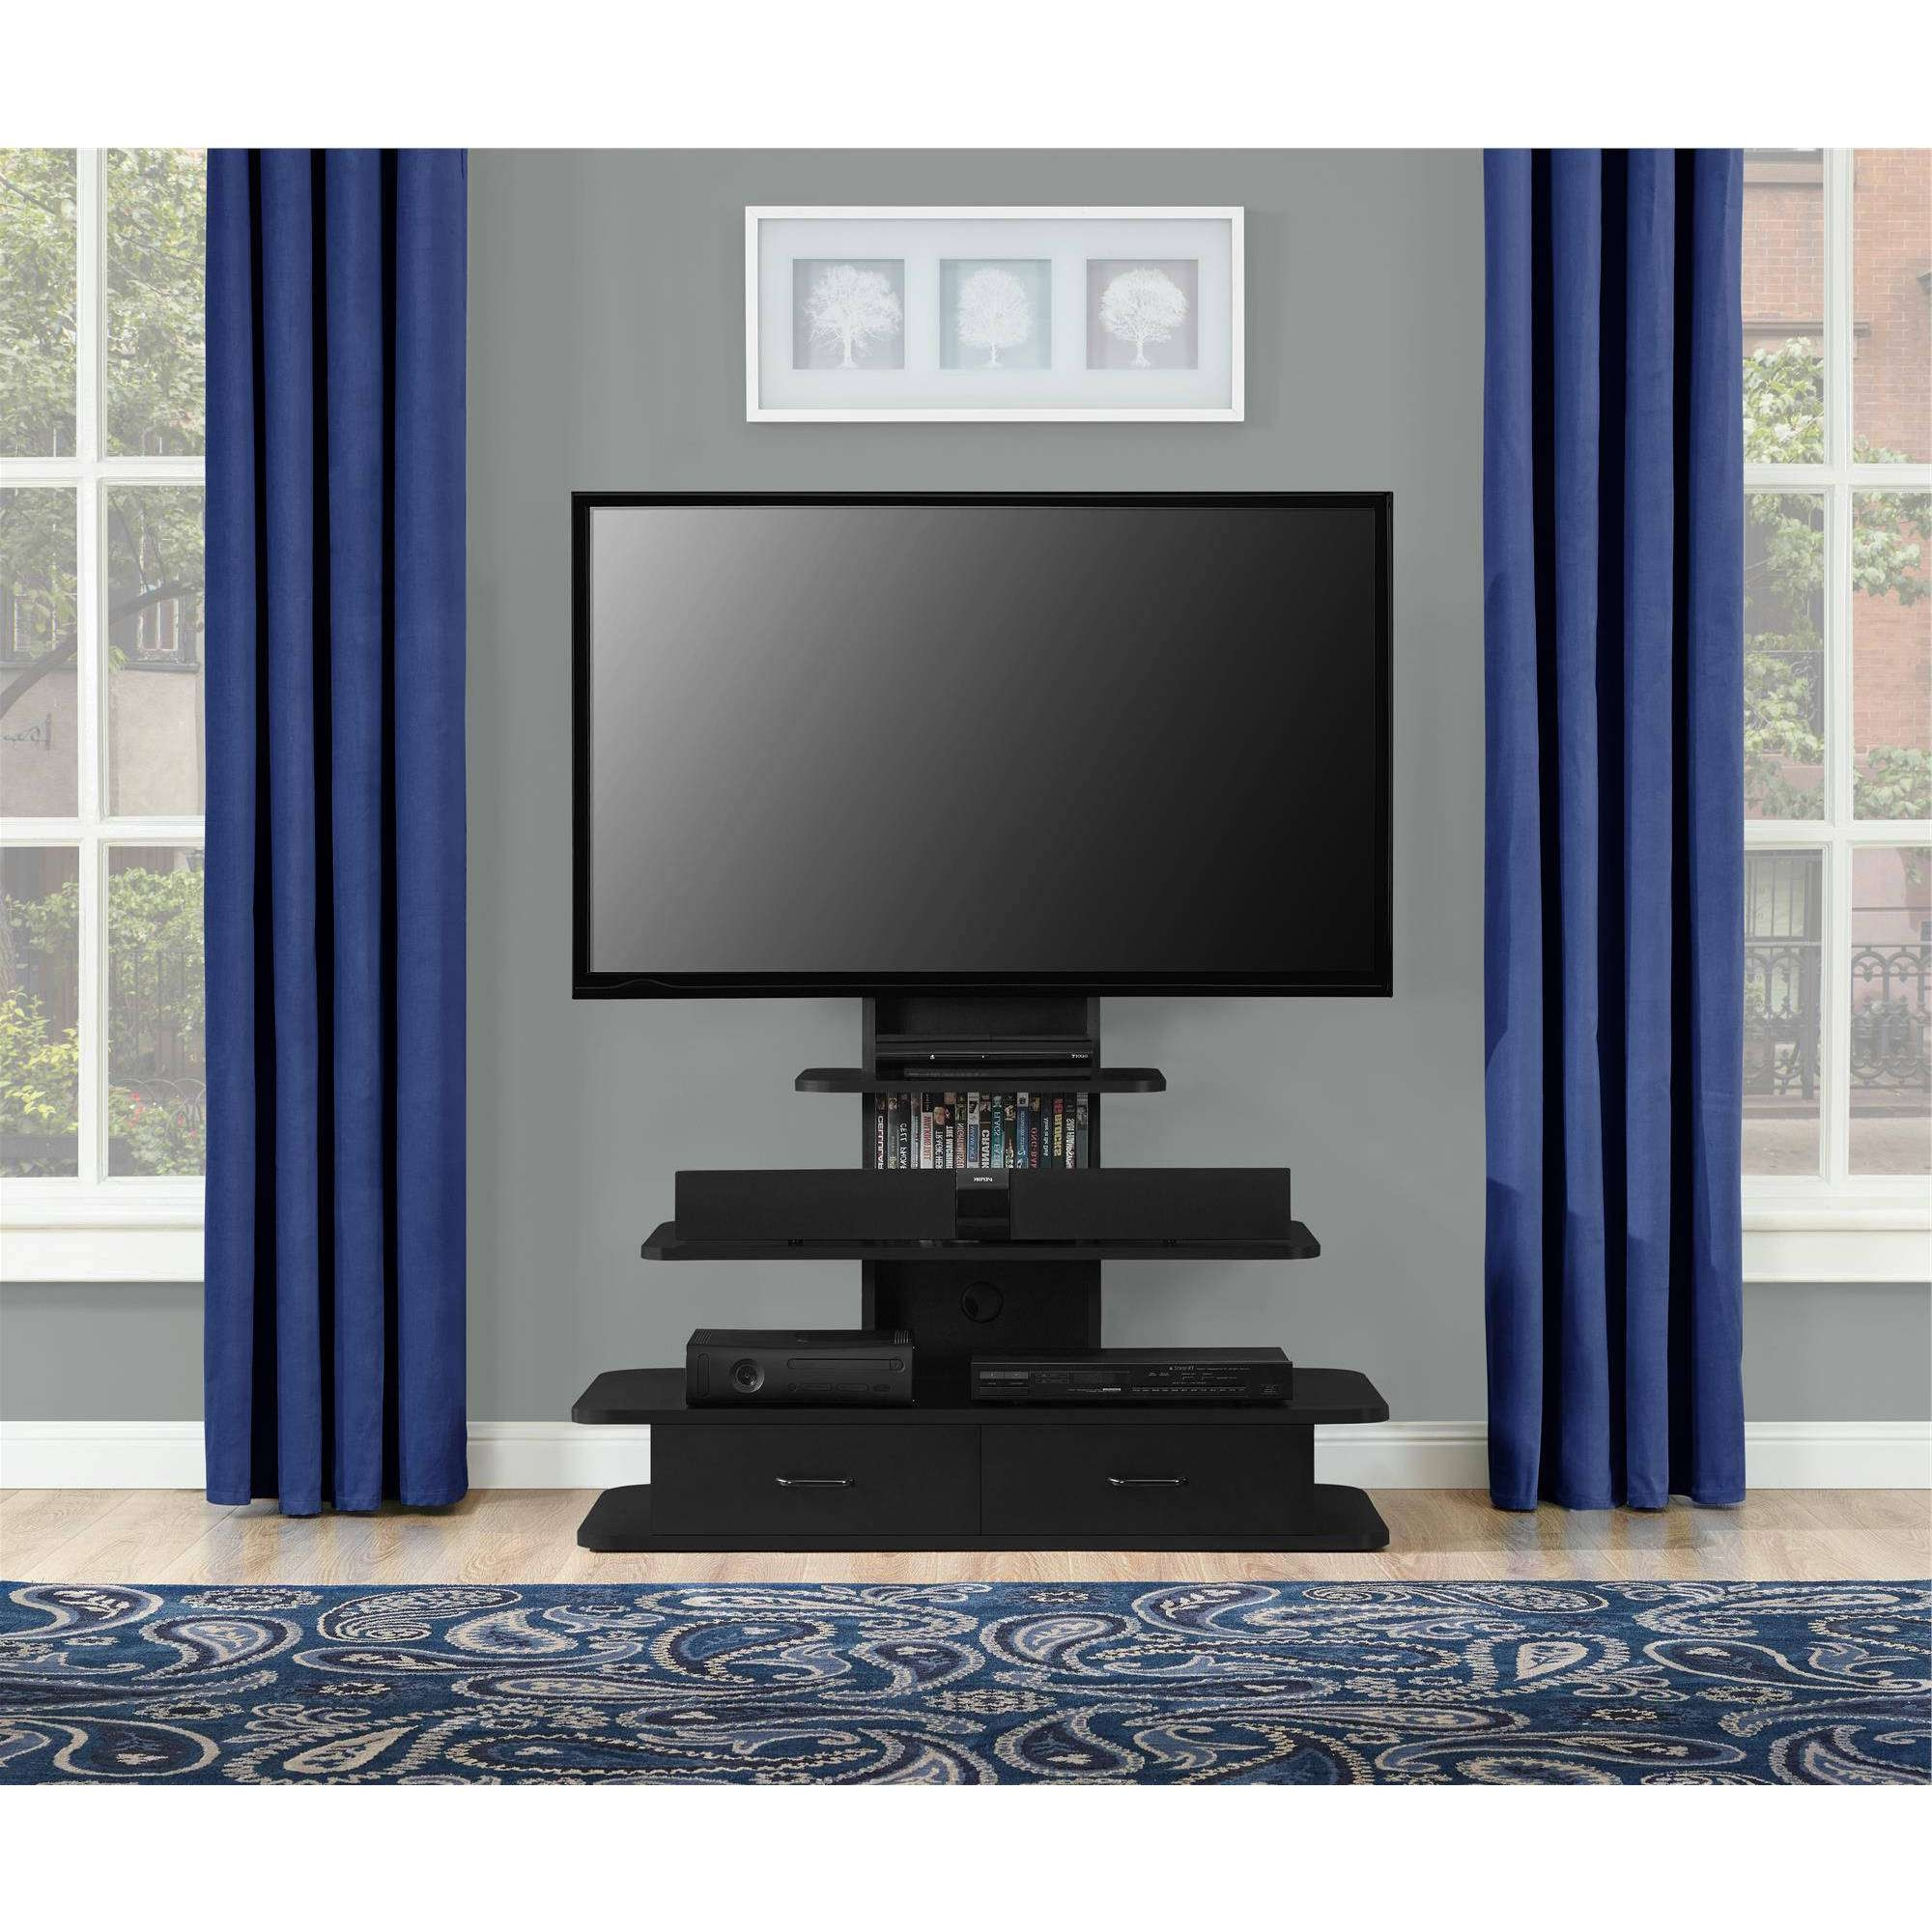 Ameriwood Home Galaxy Xl Tv Stand With Drawers For Tvs Up To 70 Within Tv Stands For 70 Inch Tvs (View 14 of 20)